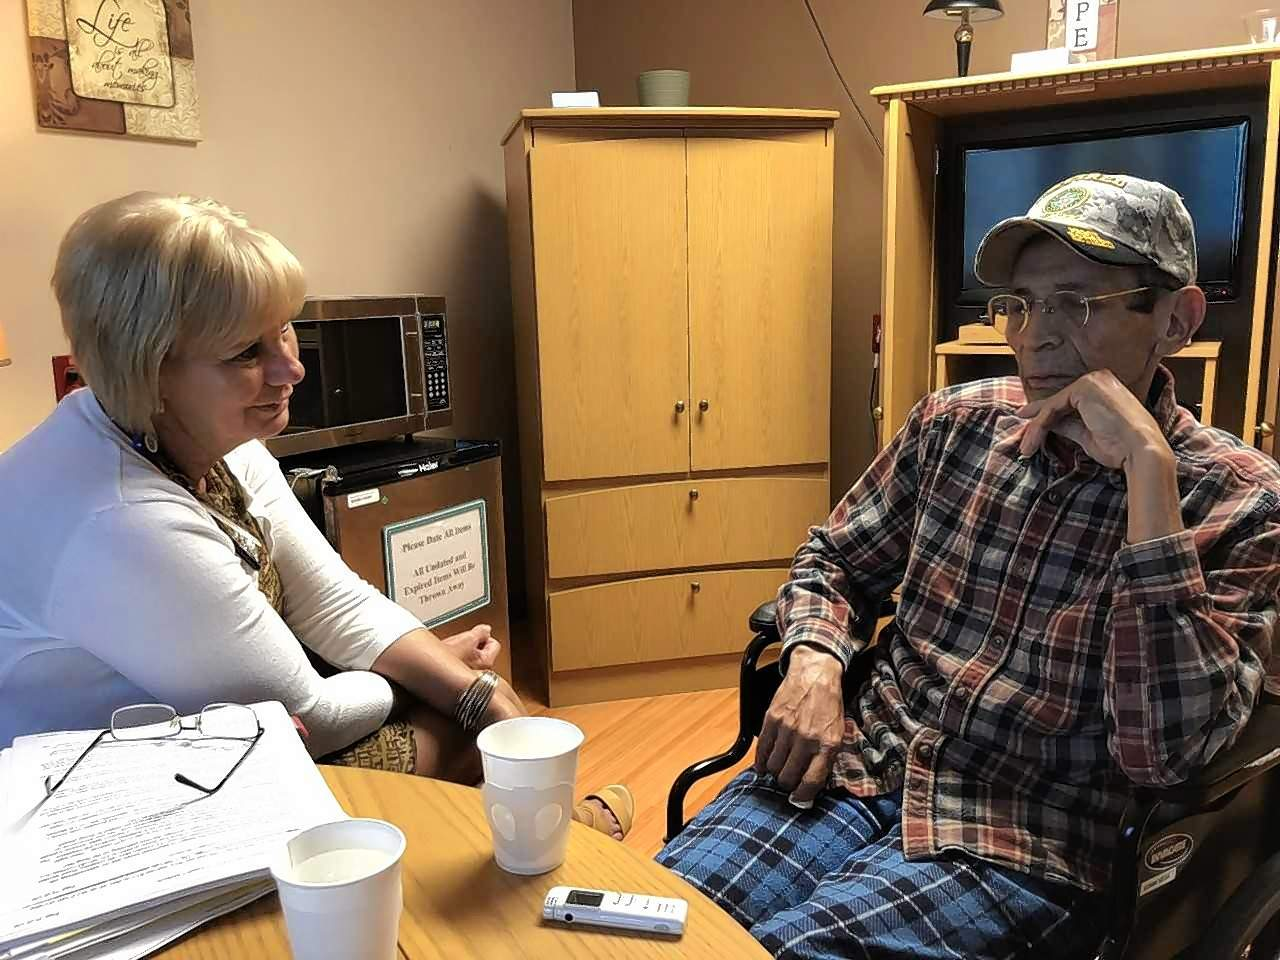 SusAnna Cook, Palliative Care Coordinator at the Marion VAMC, listens as Edwin Vega tells the story of his experiences with Charlie Company on a Vietnam hillside in 1969.